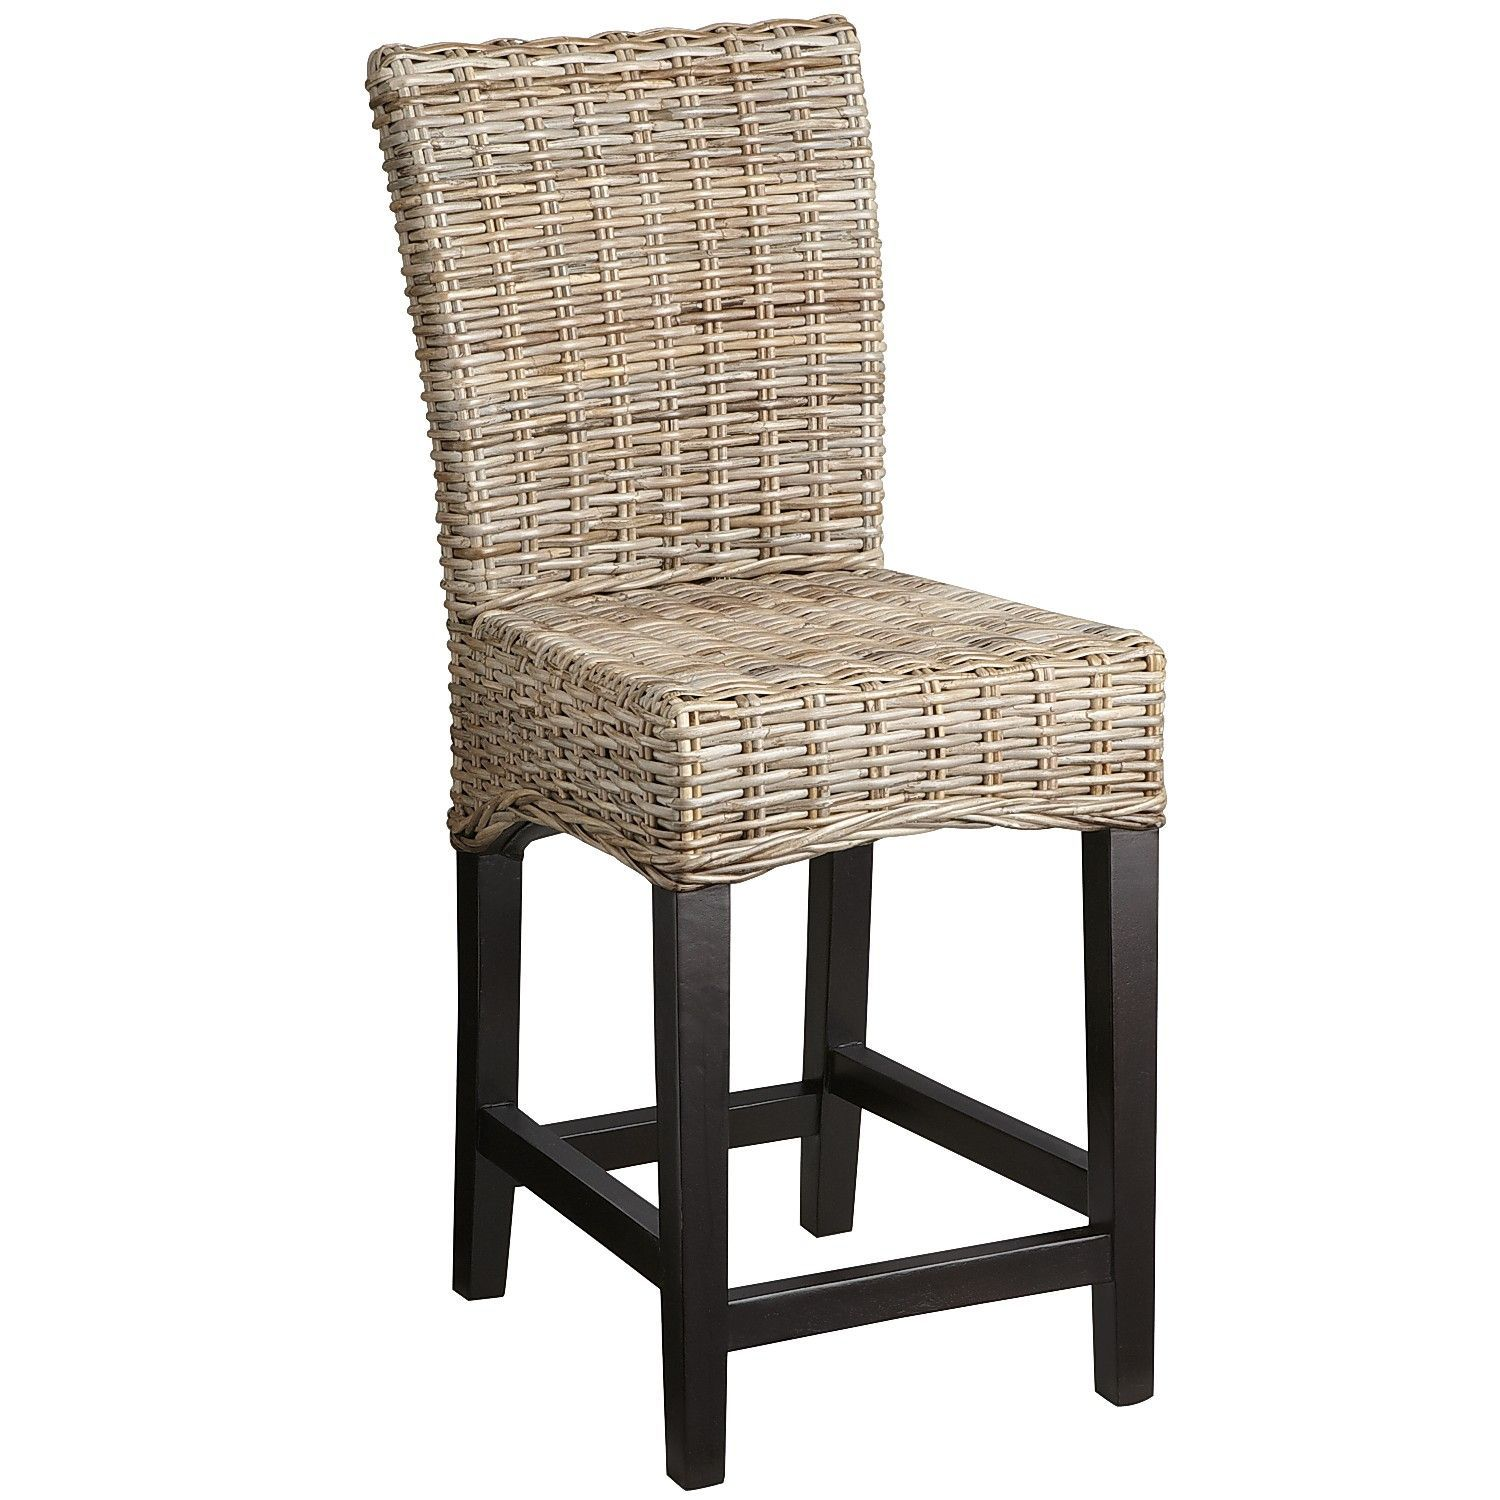 Kitchen Counter Chairs Metal Cart Kubu Bar And Stool Rattan Espresso Stools